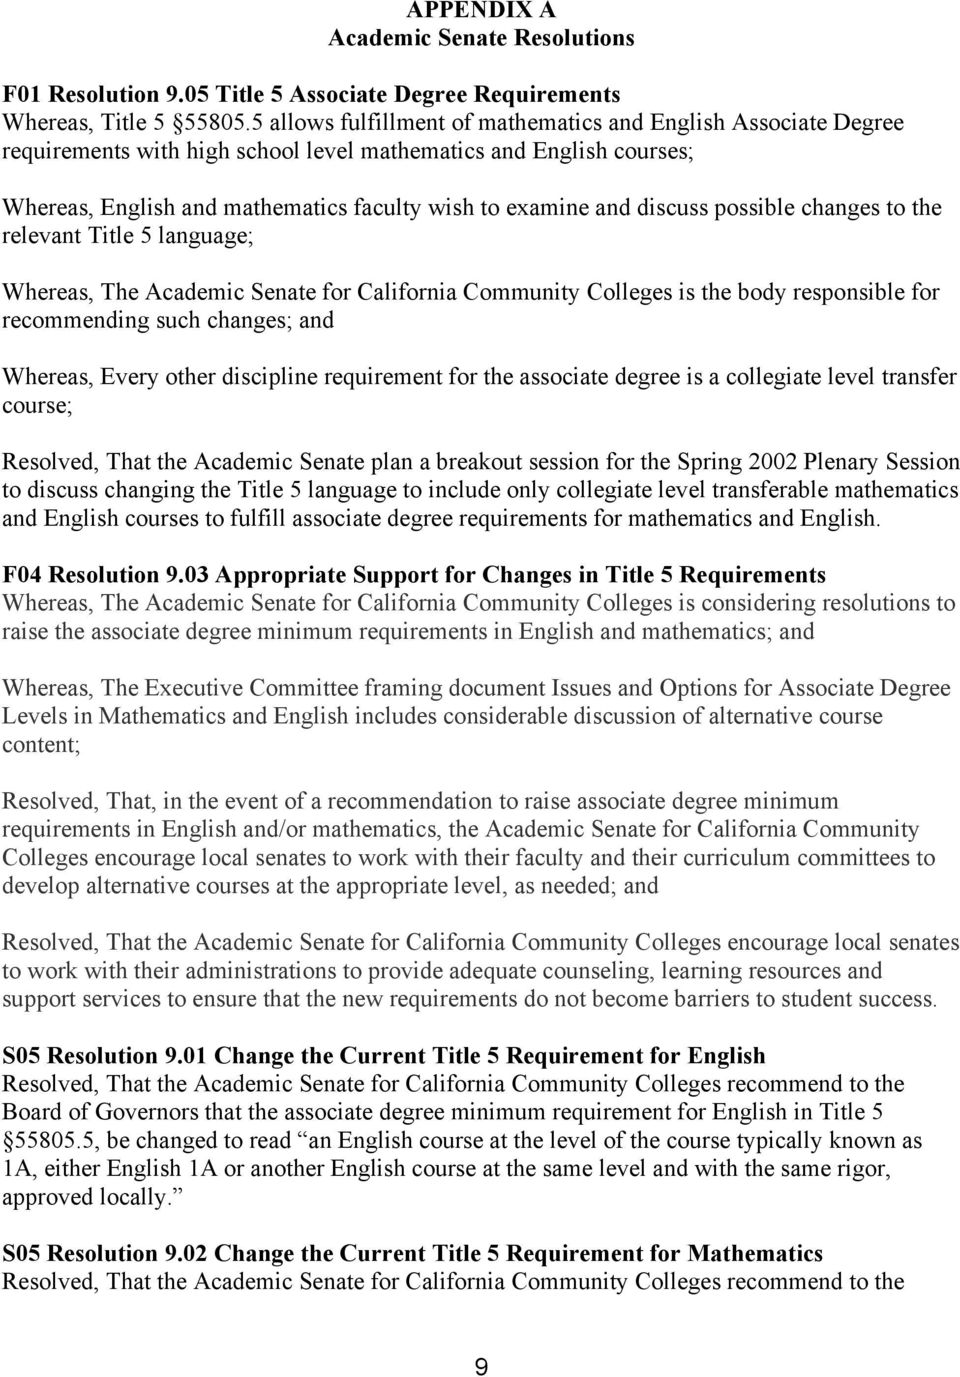 discuss possible changes to the relevant Title 5 language; Whereas, The Academic Senate for California Community Colleges is the body responsible for recommending such changes; and Whereas, Every